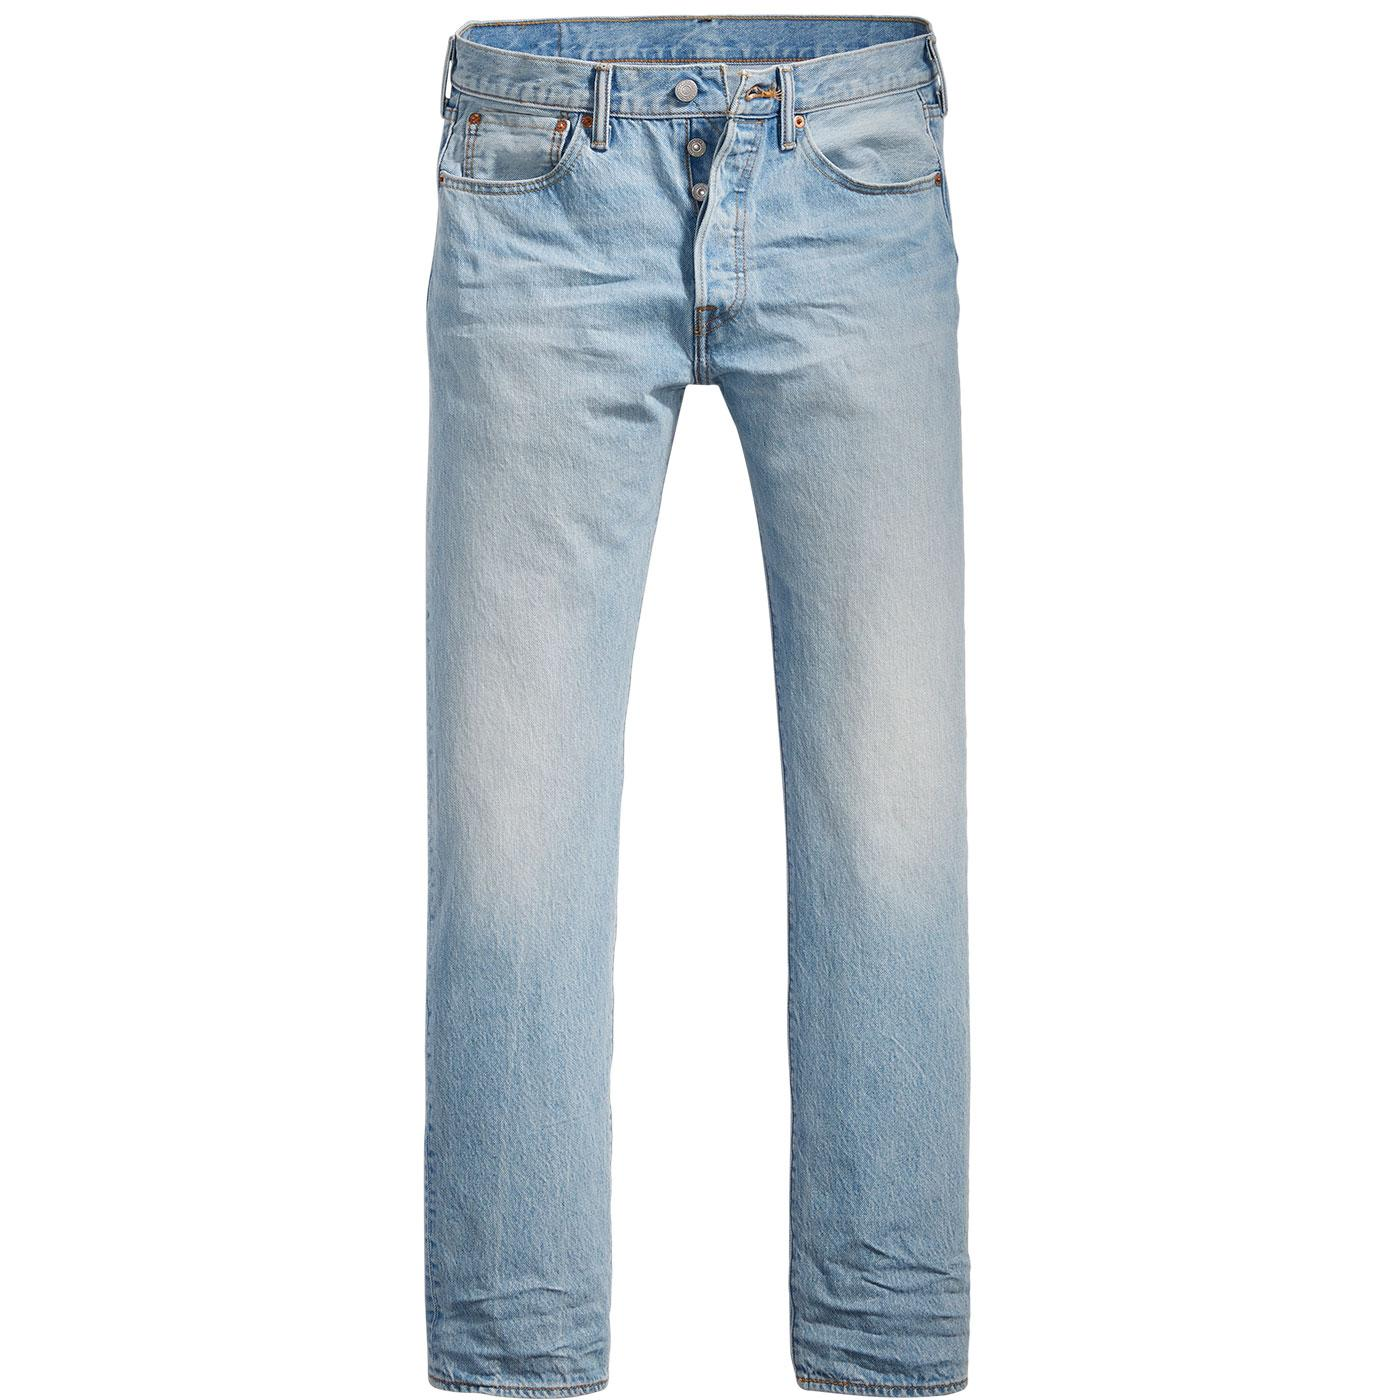 LEVI'S 501 Original Straight Denim Jeans TOMAHAWK